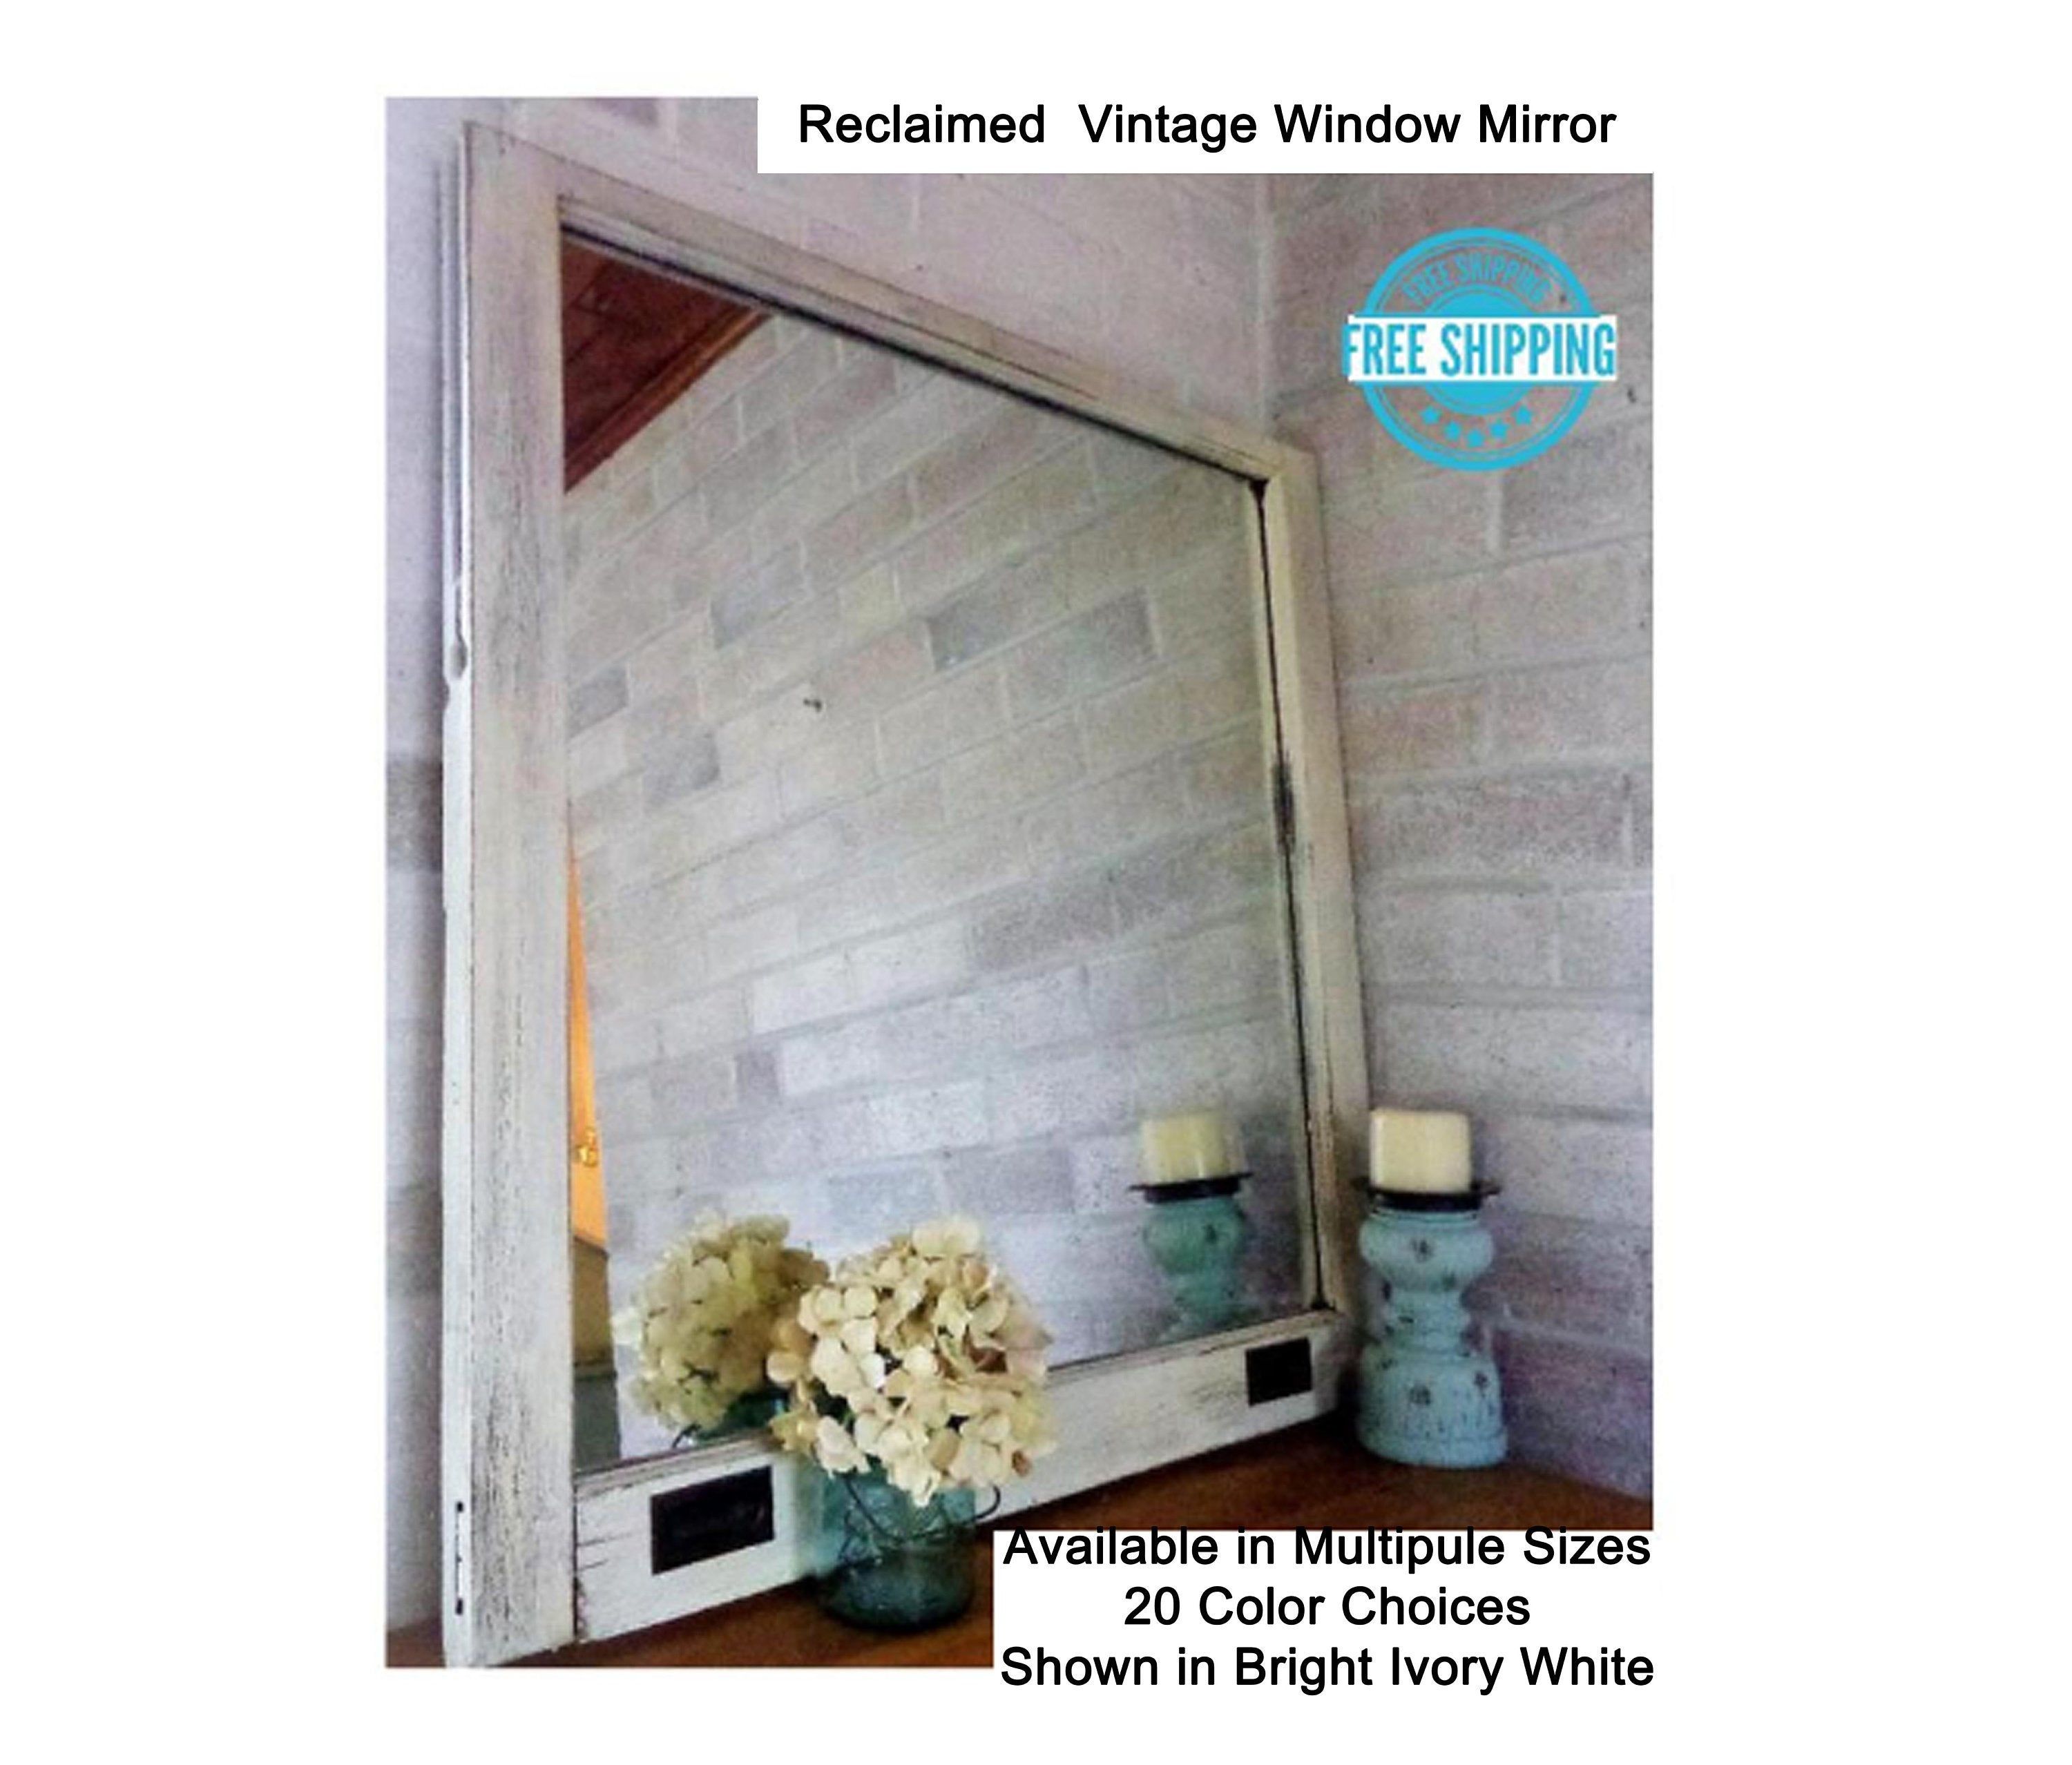 Rustic Country Single Pane with HANDLES Window Mirror - Renewed Decor & Storage